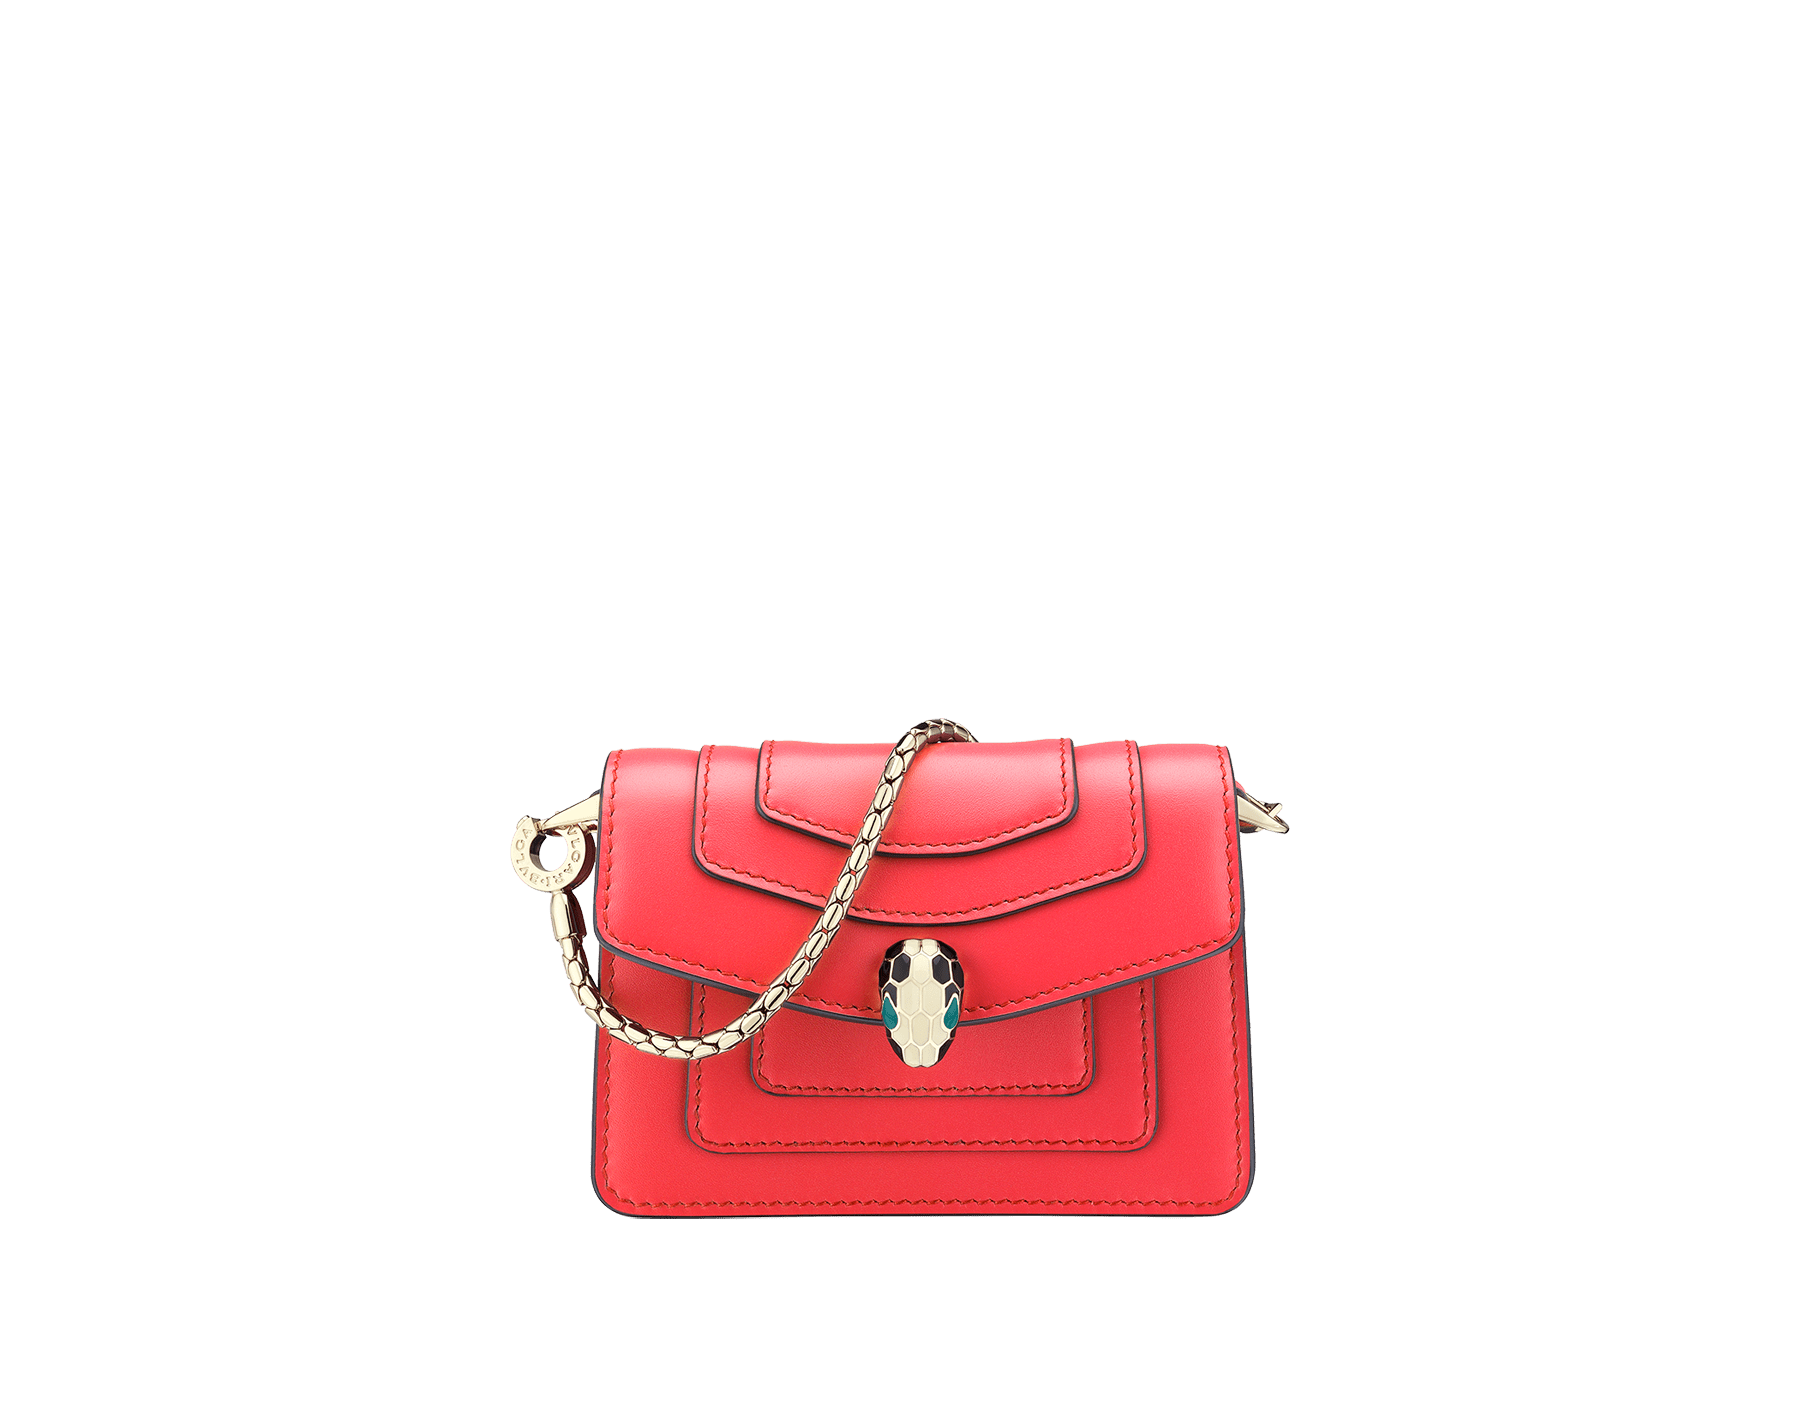 Serpenti Forever miniature bag charm in sea star coral calf leather with berry tourmaline calf leather lining. Iconic light gold plated brass snakehead stud closure enameled in black and white, and finished with green enamel eyes. 288370 image 1